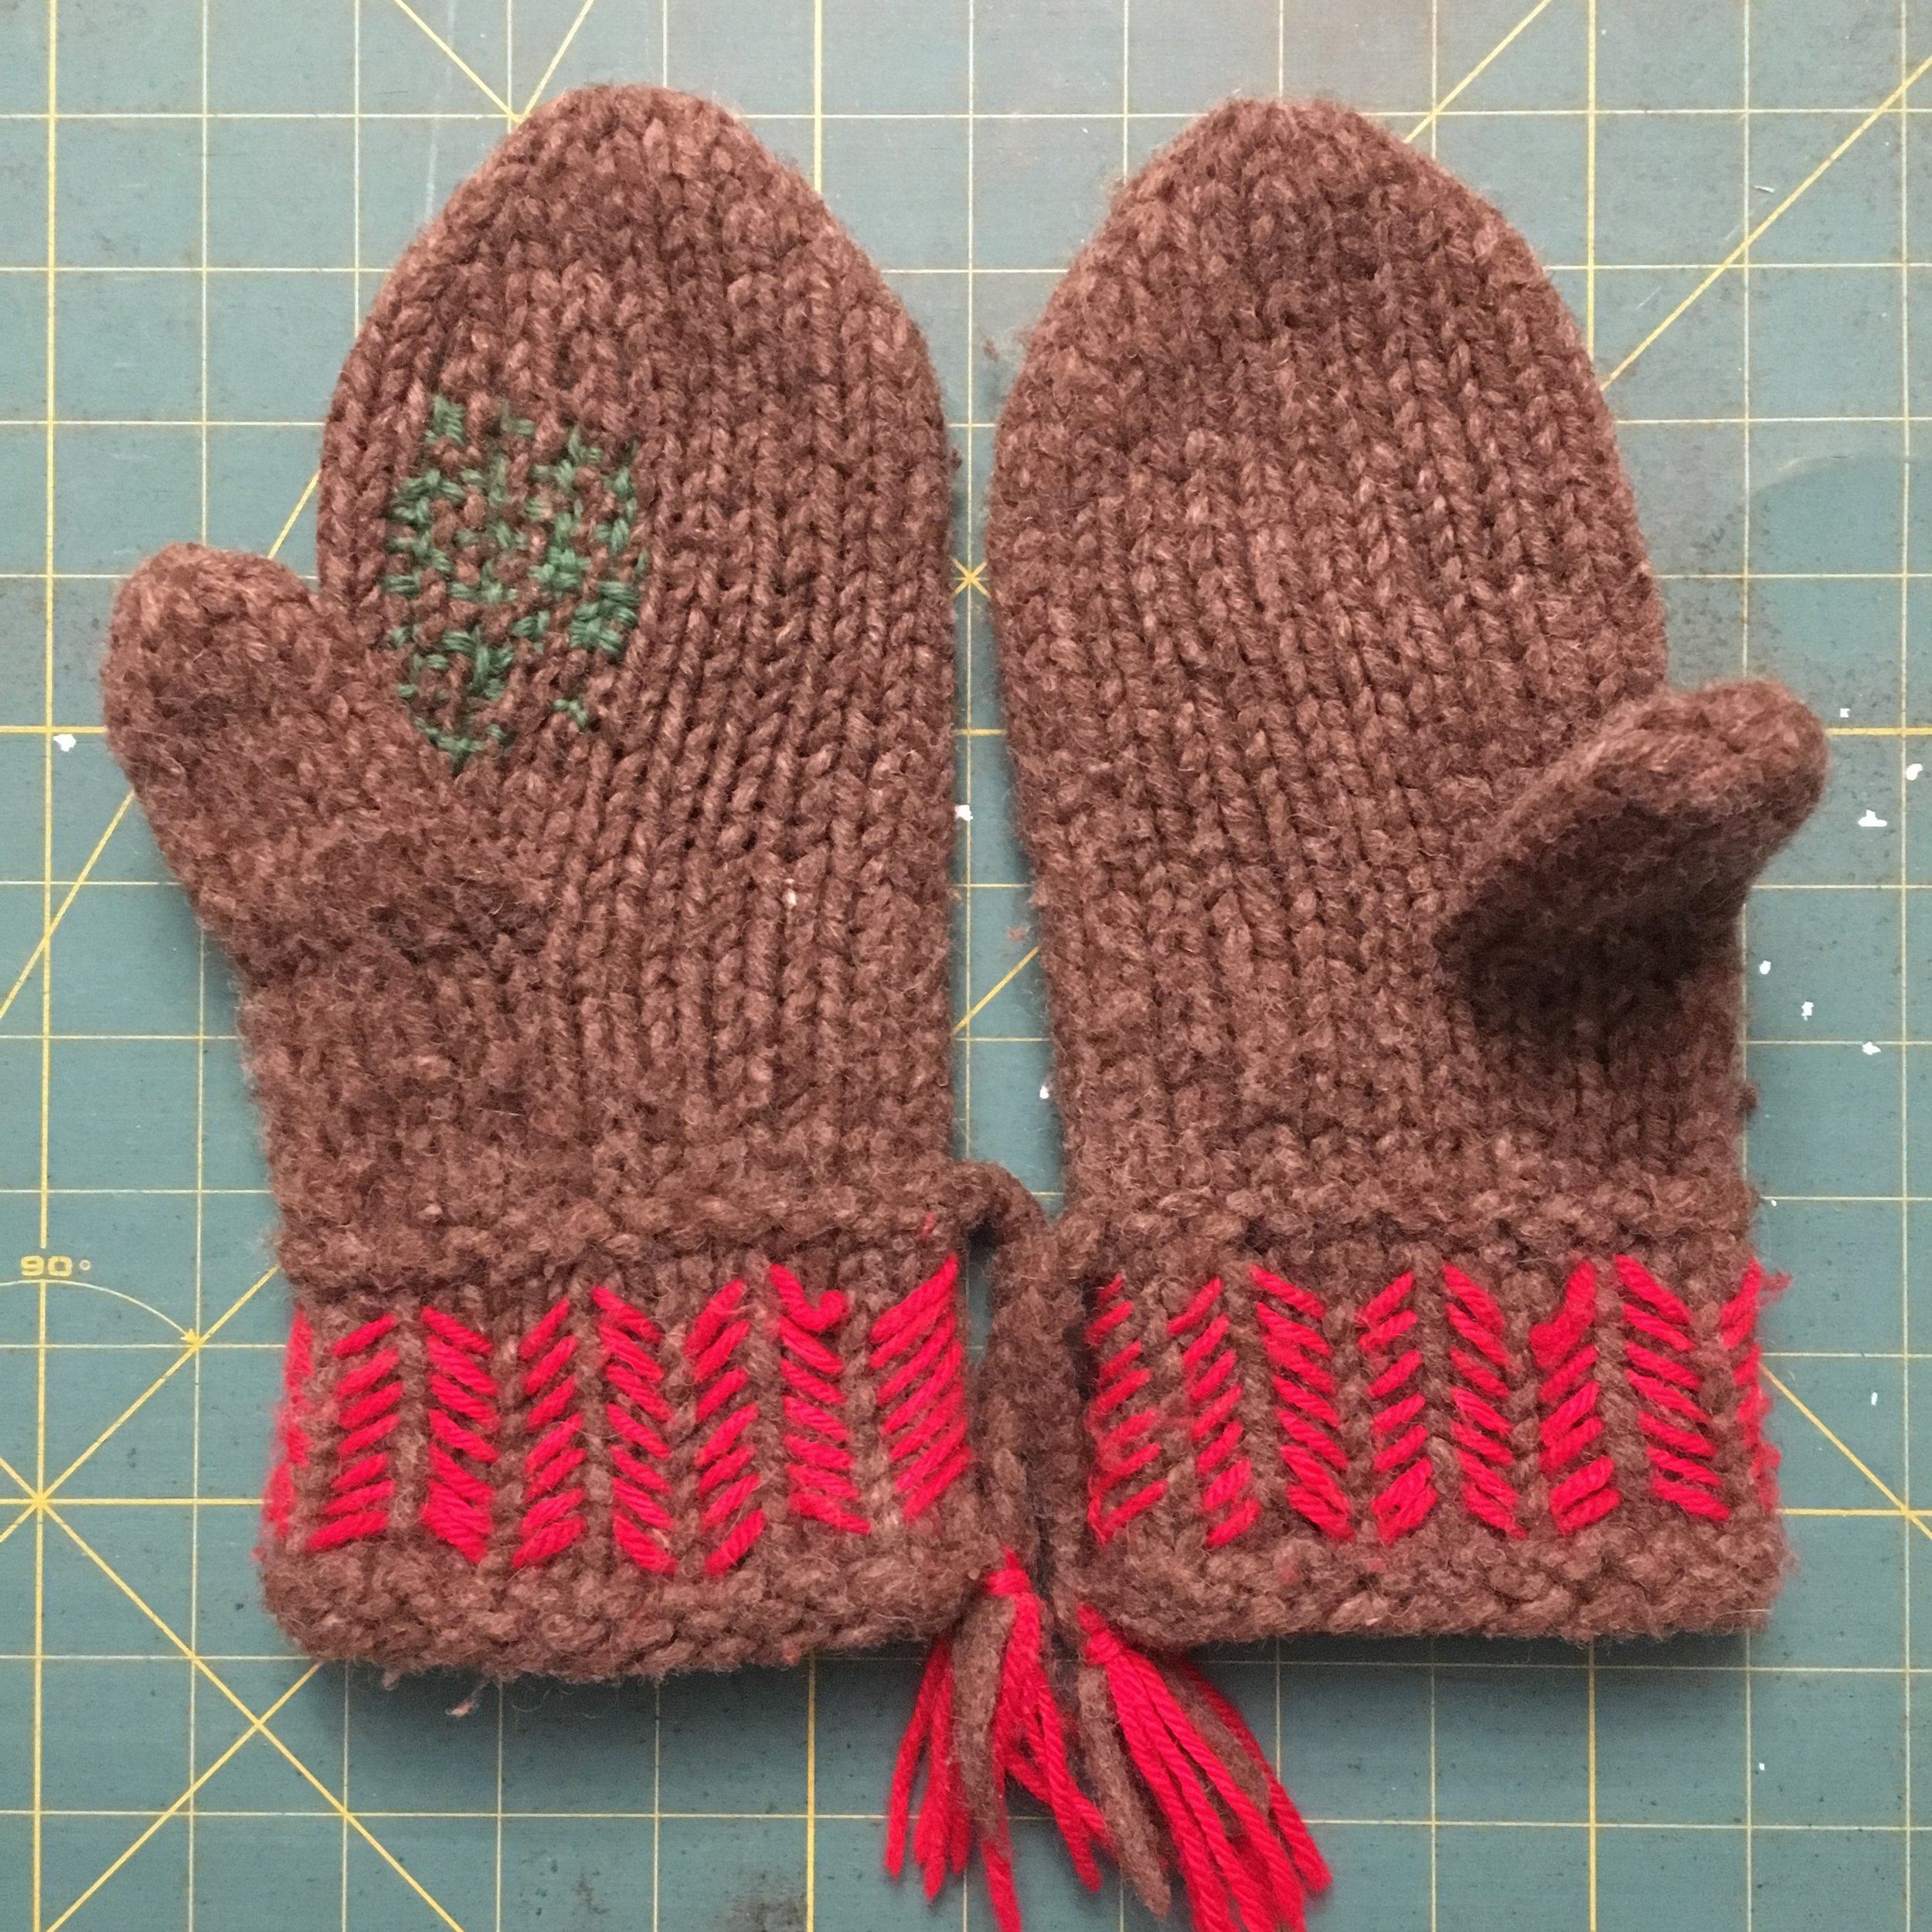 Darning repair of a wool mitten